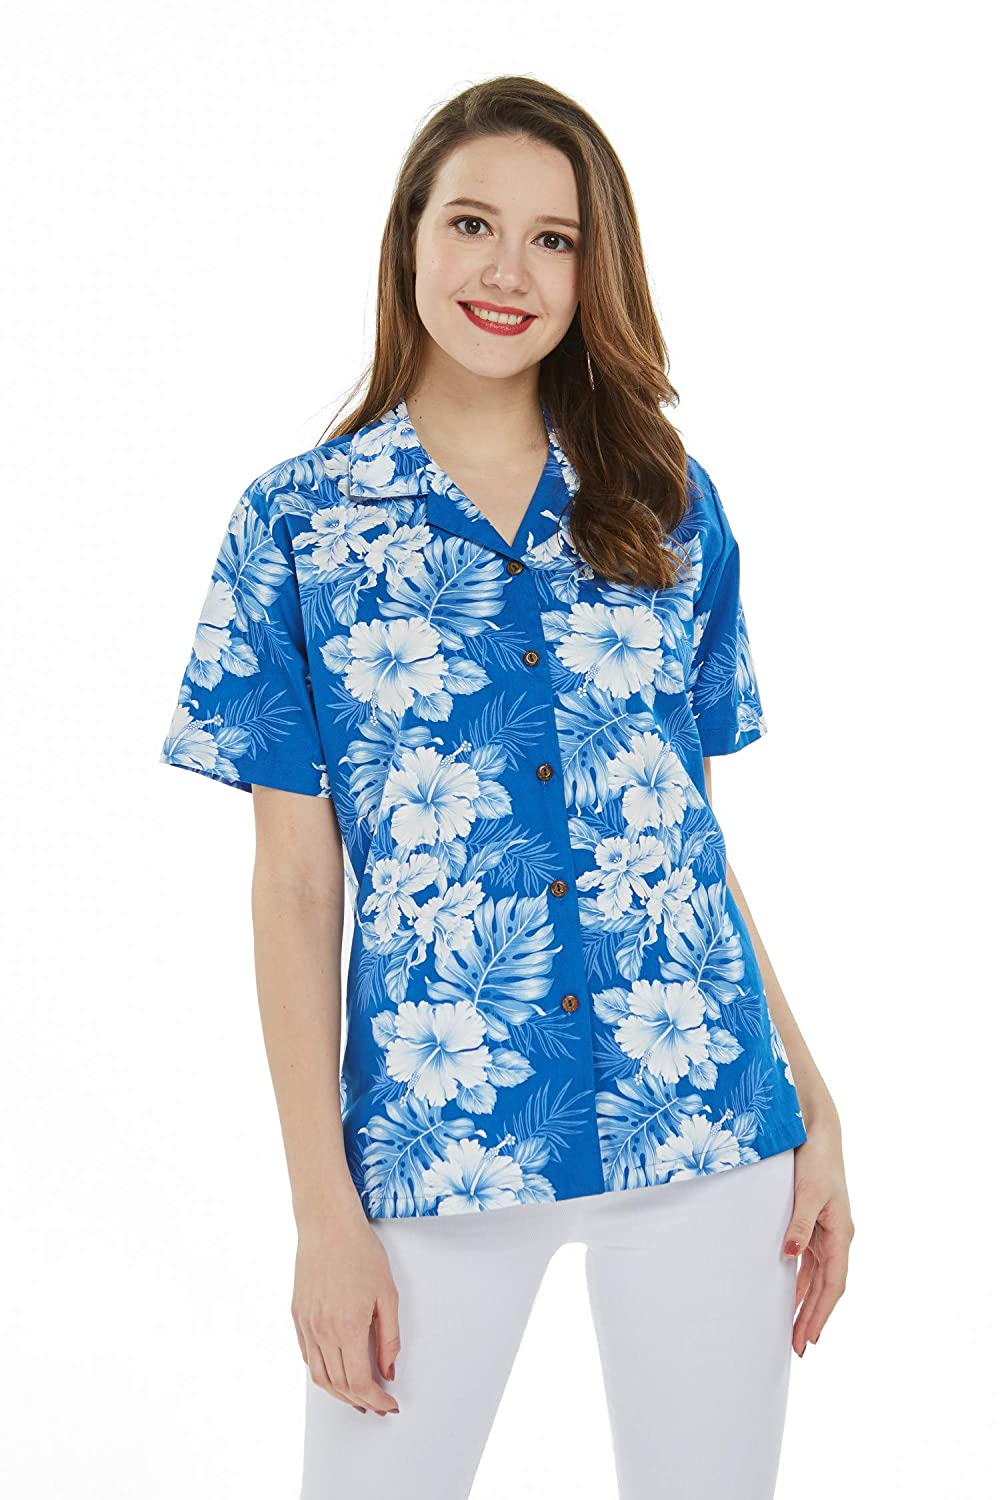 bluee With White Line Floral Made in Hawaii Women's Hawaiian Lady Aloha Shirt in bluee with White Line Floral